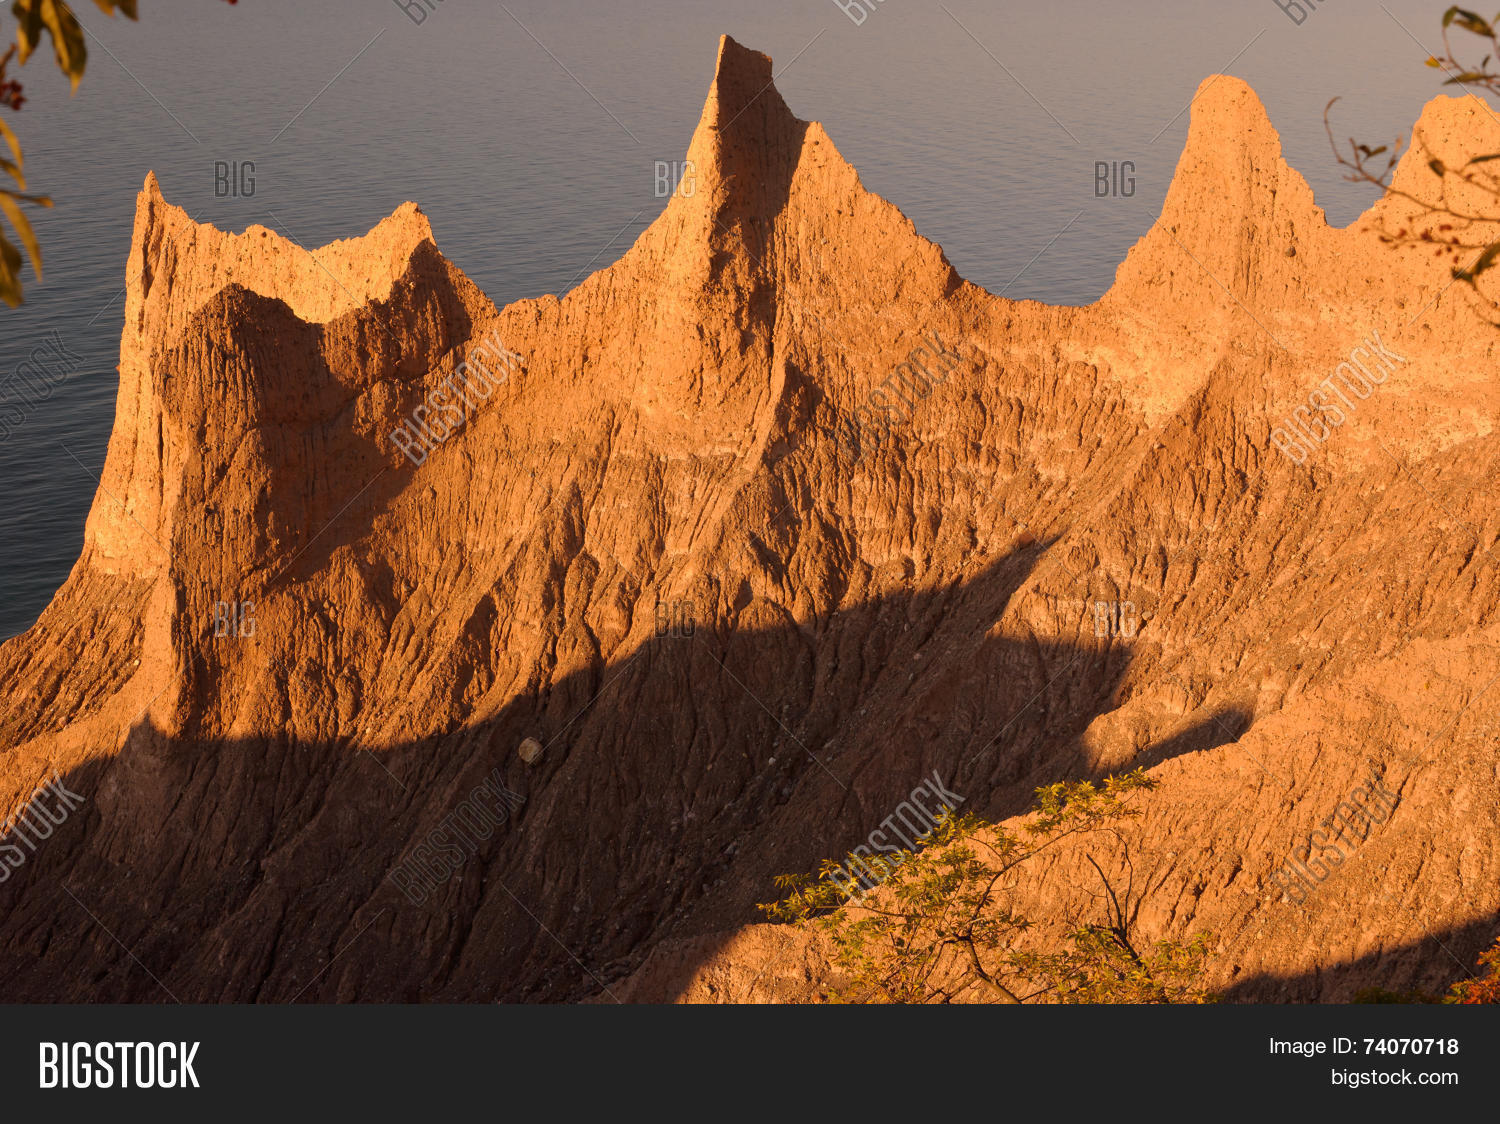 Eroticland ' shadows with erotic land formations